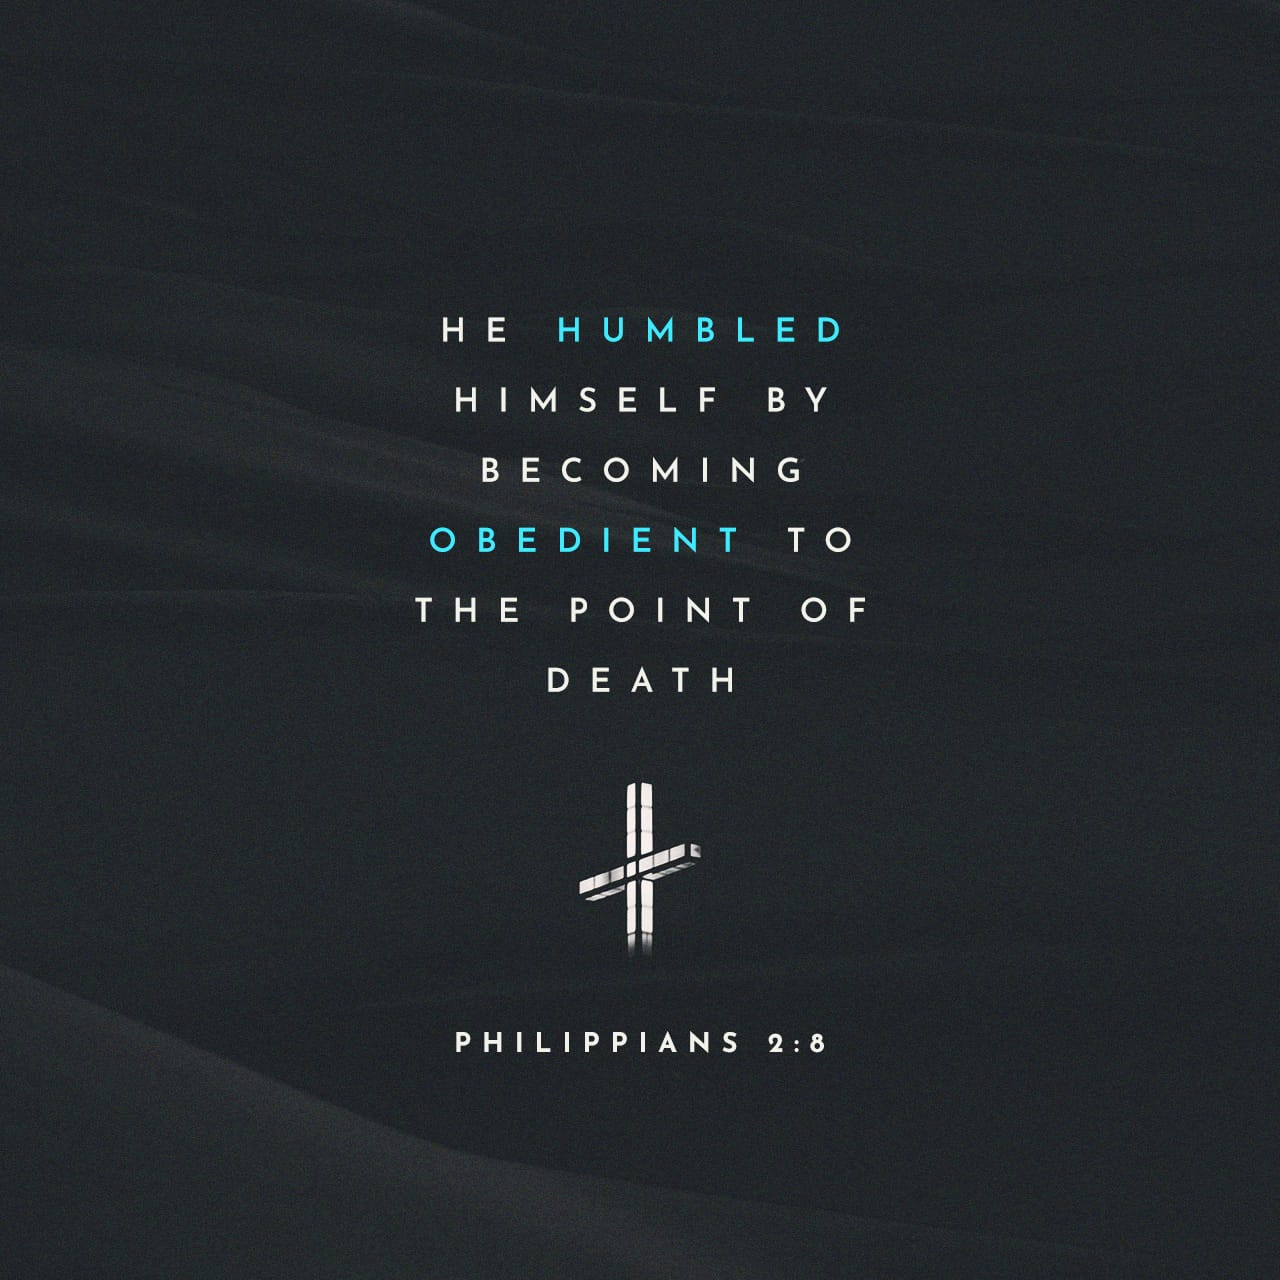 Philippians 2:8 And being found in human form, he humbled himself by